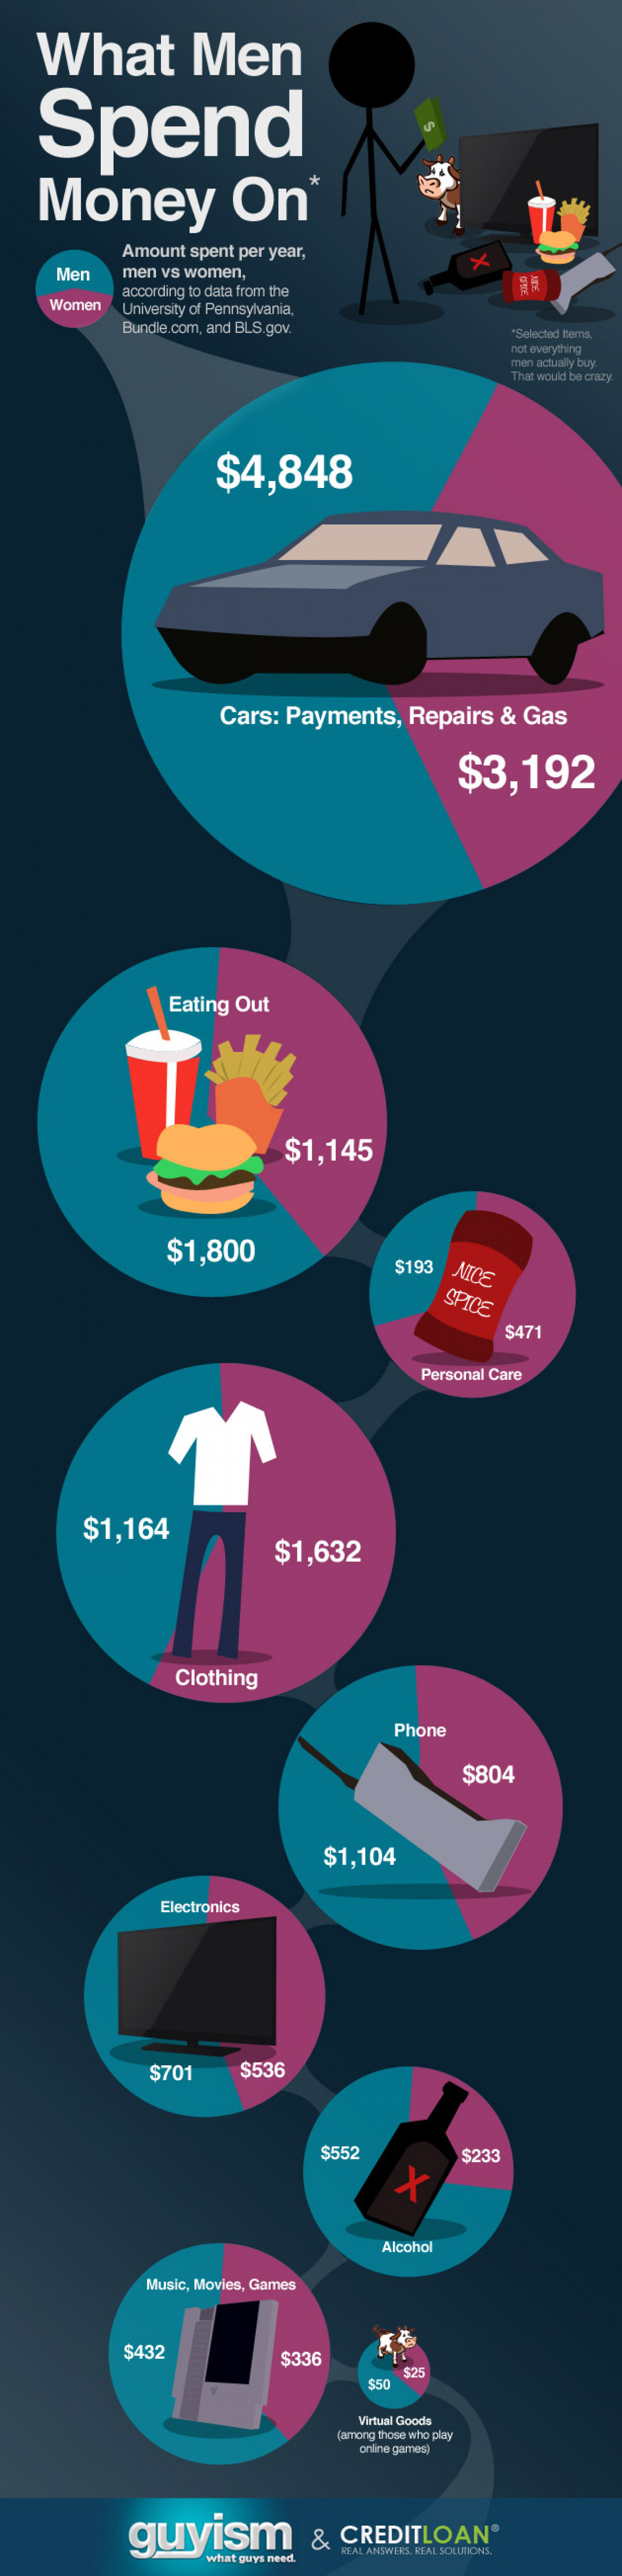 What Men Spend Money On Infographic